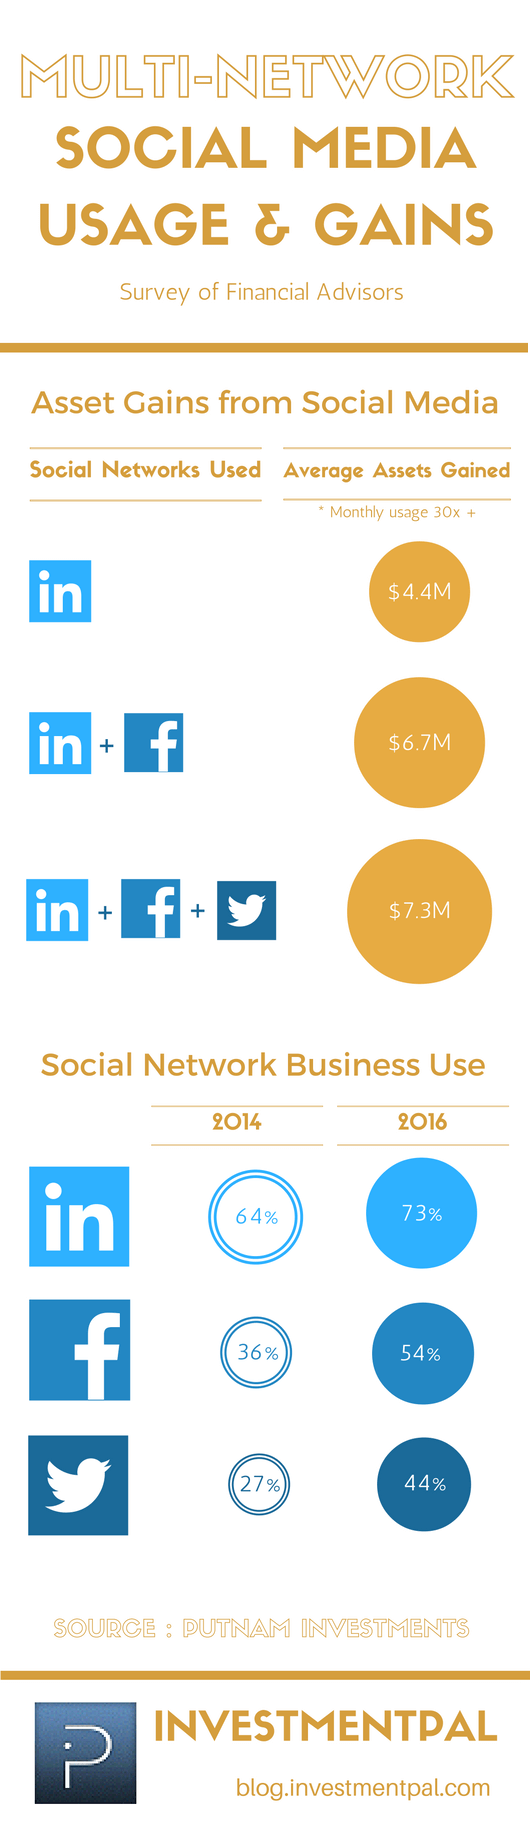 Financial advisors twitter linkedin facebook gains